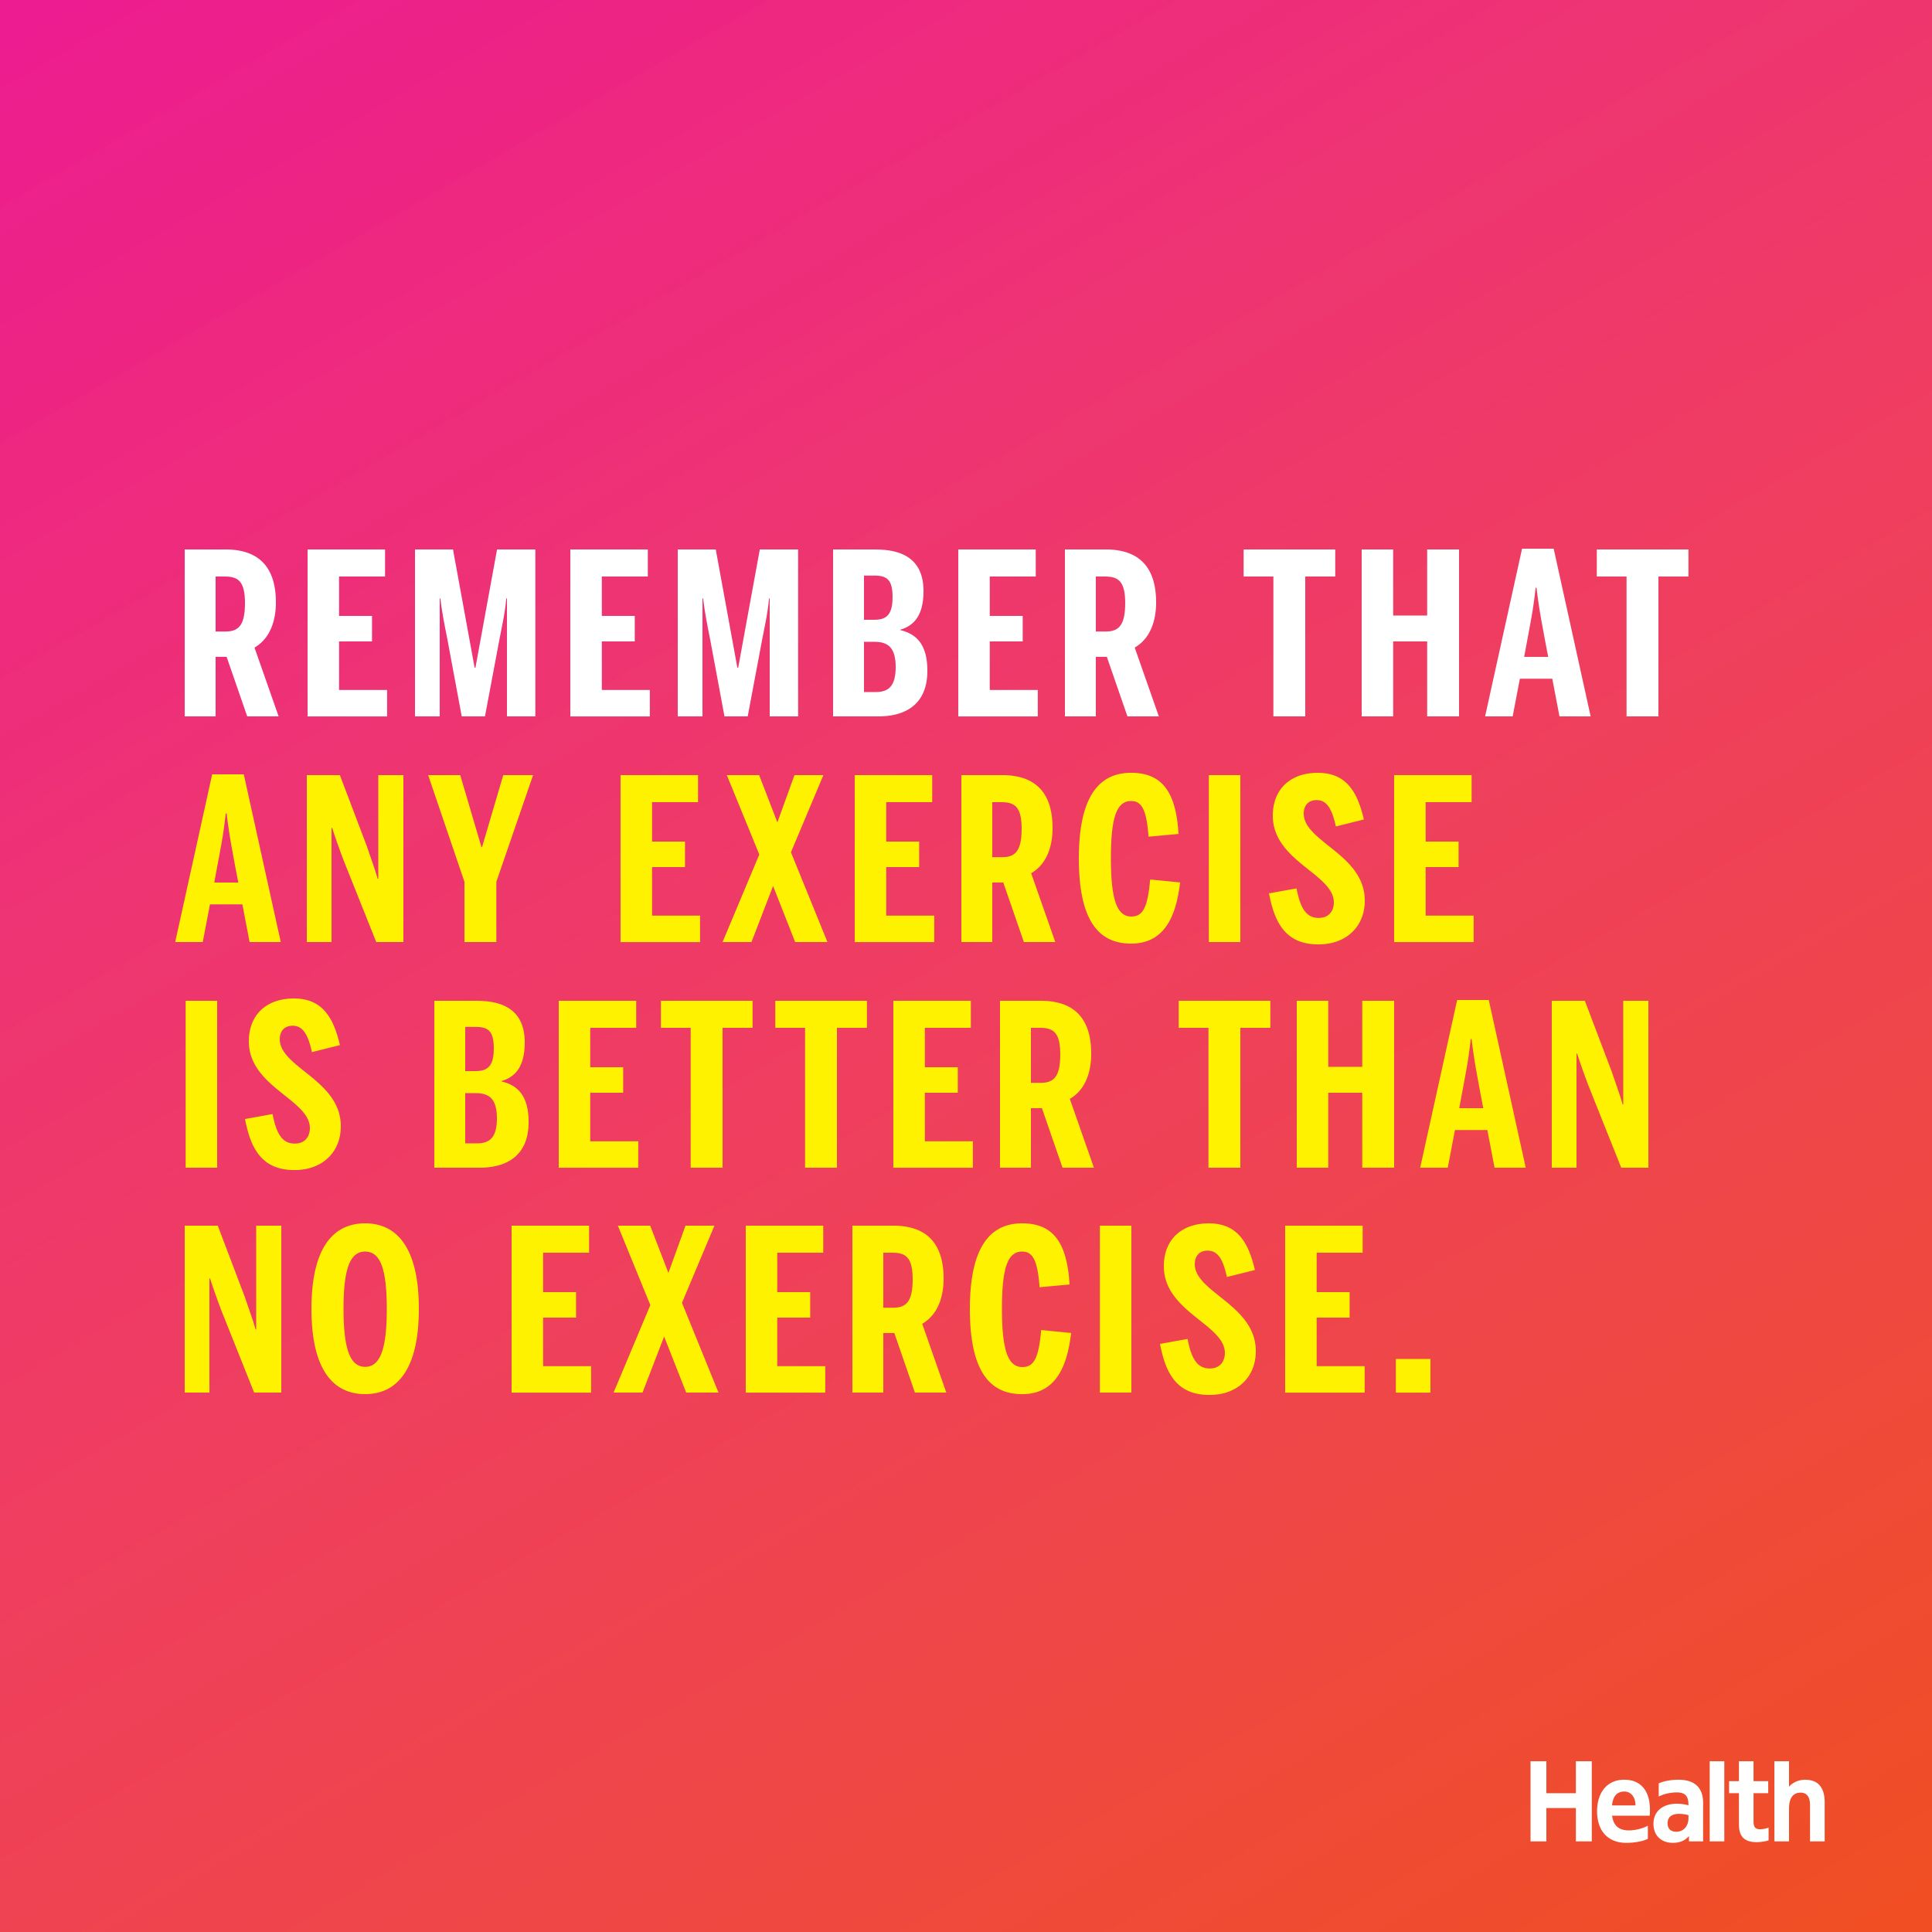 Inspirational Quotes About Health: Health Quotes, Fitspiration And Drop